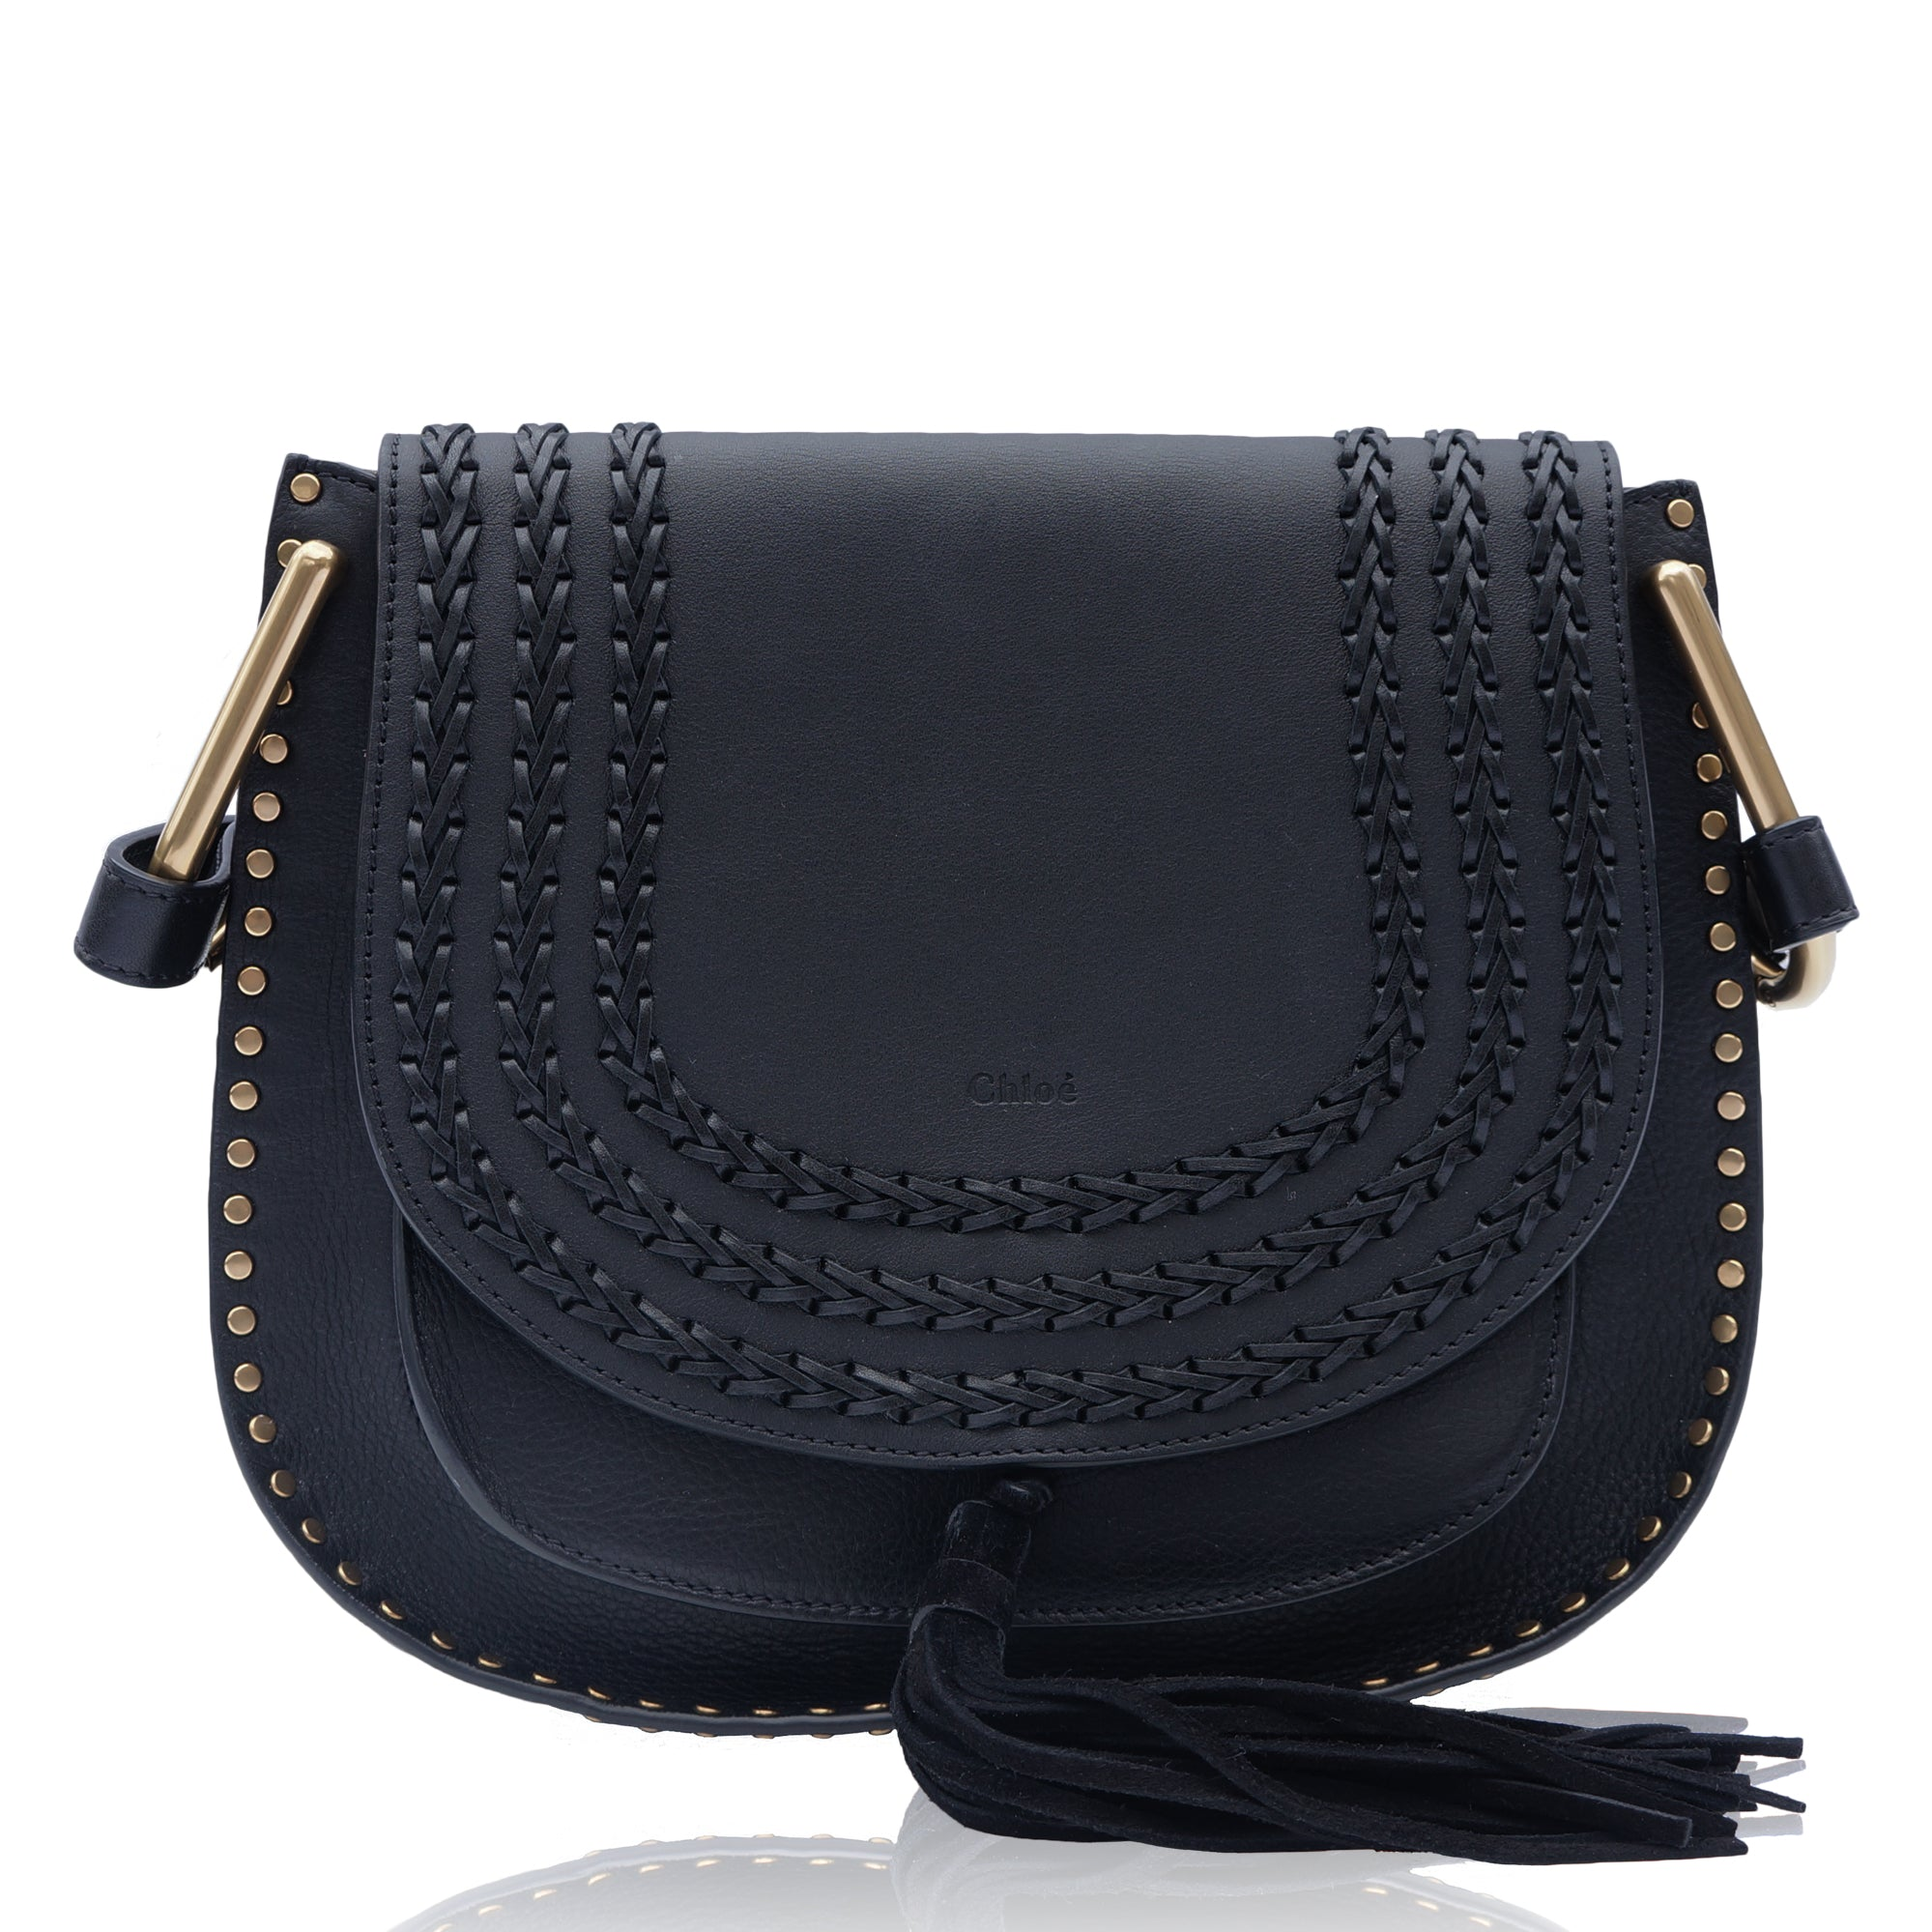 5c872825a3ae CHLOE HUDSON BLACK LEATHER SHOULDER CROSSBODY BAG Shop online the best  value on authentic designer used ...